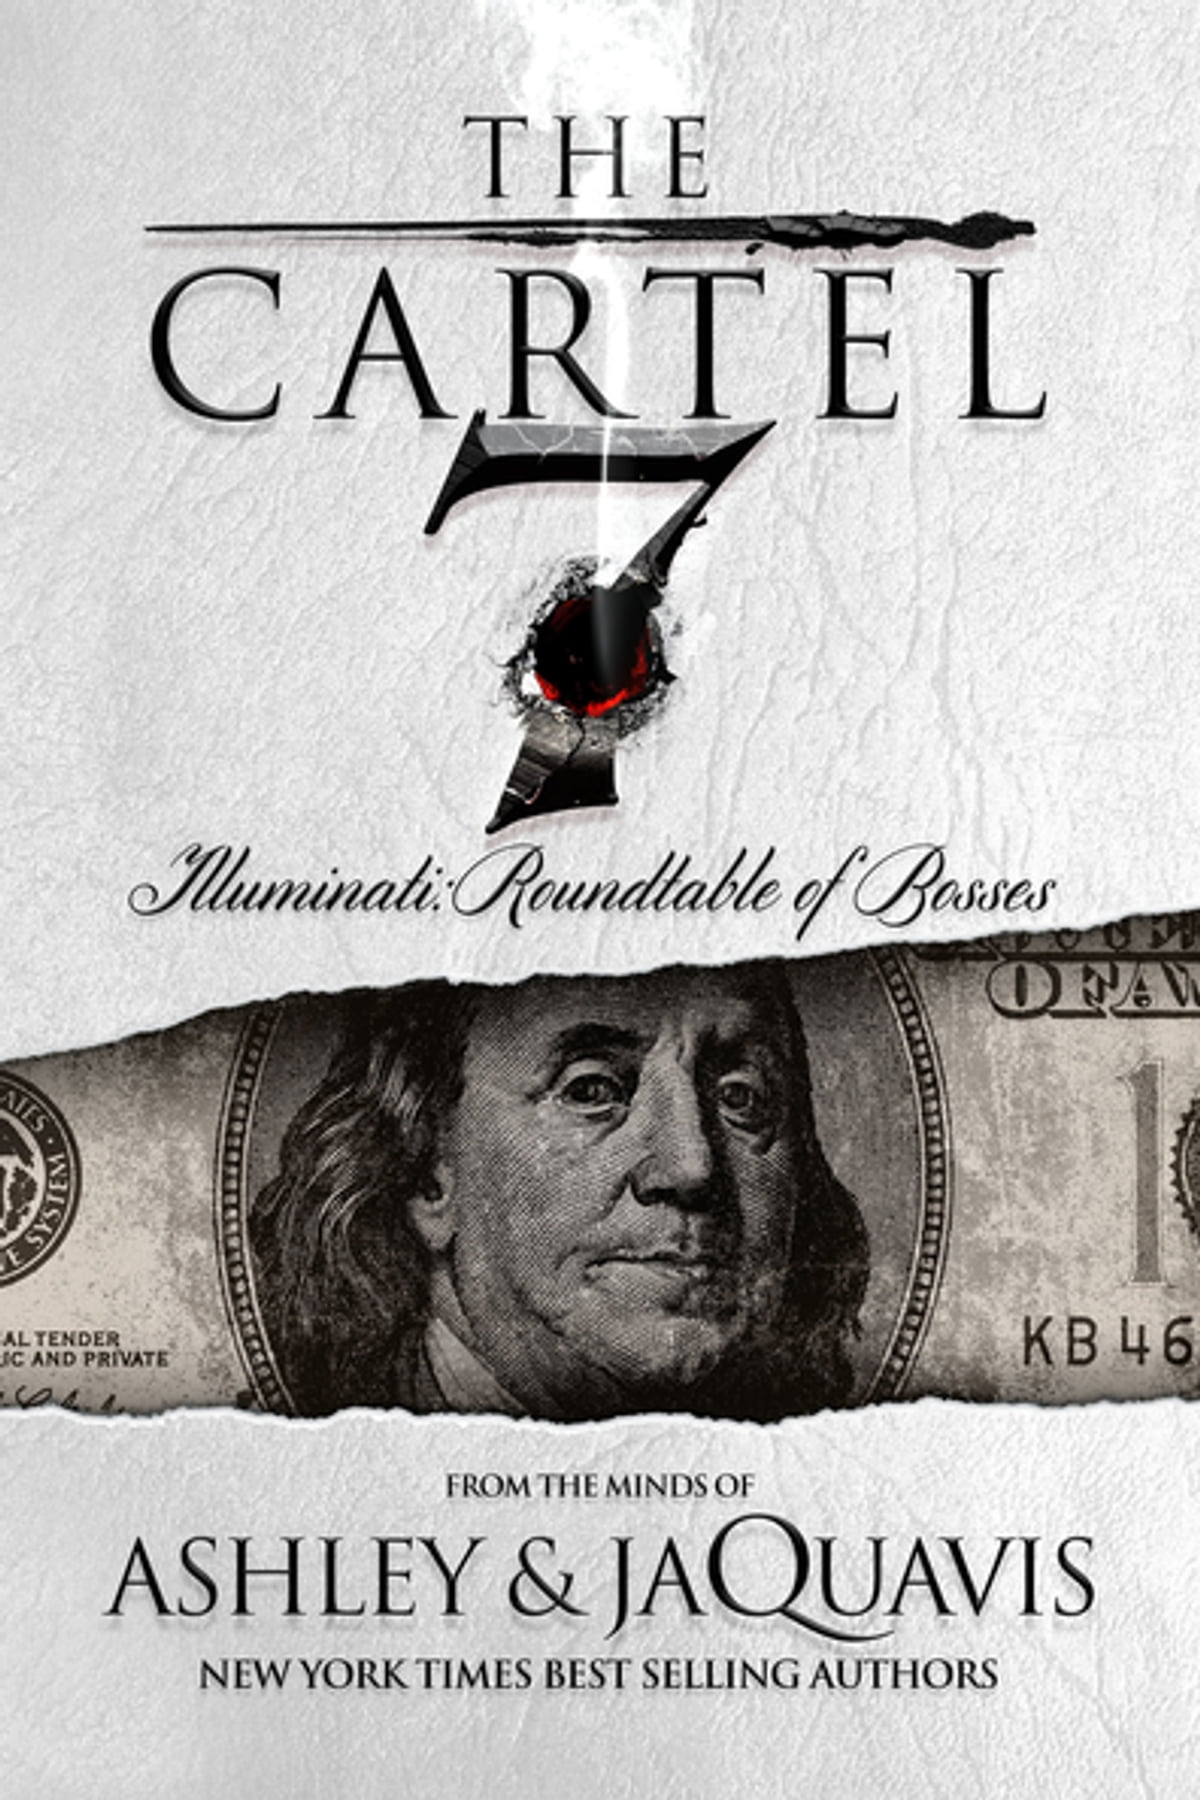 A moment of silence ebook by sister souljah 9781476766003 the cartel 7 illuminati roundtable of bosses ebook by ashley jaquavis jaquavis fandeluxe Image collections